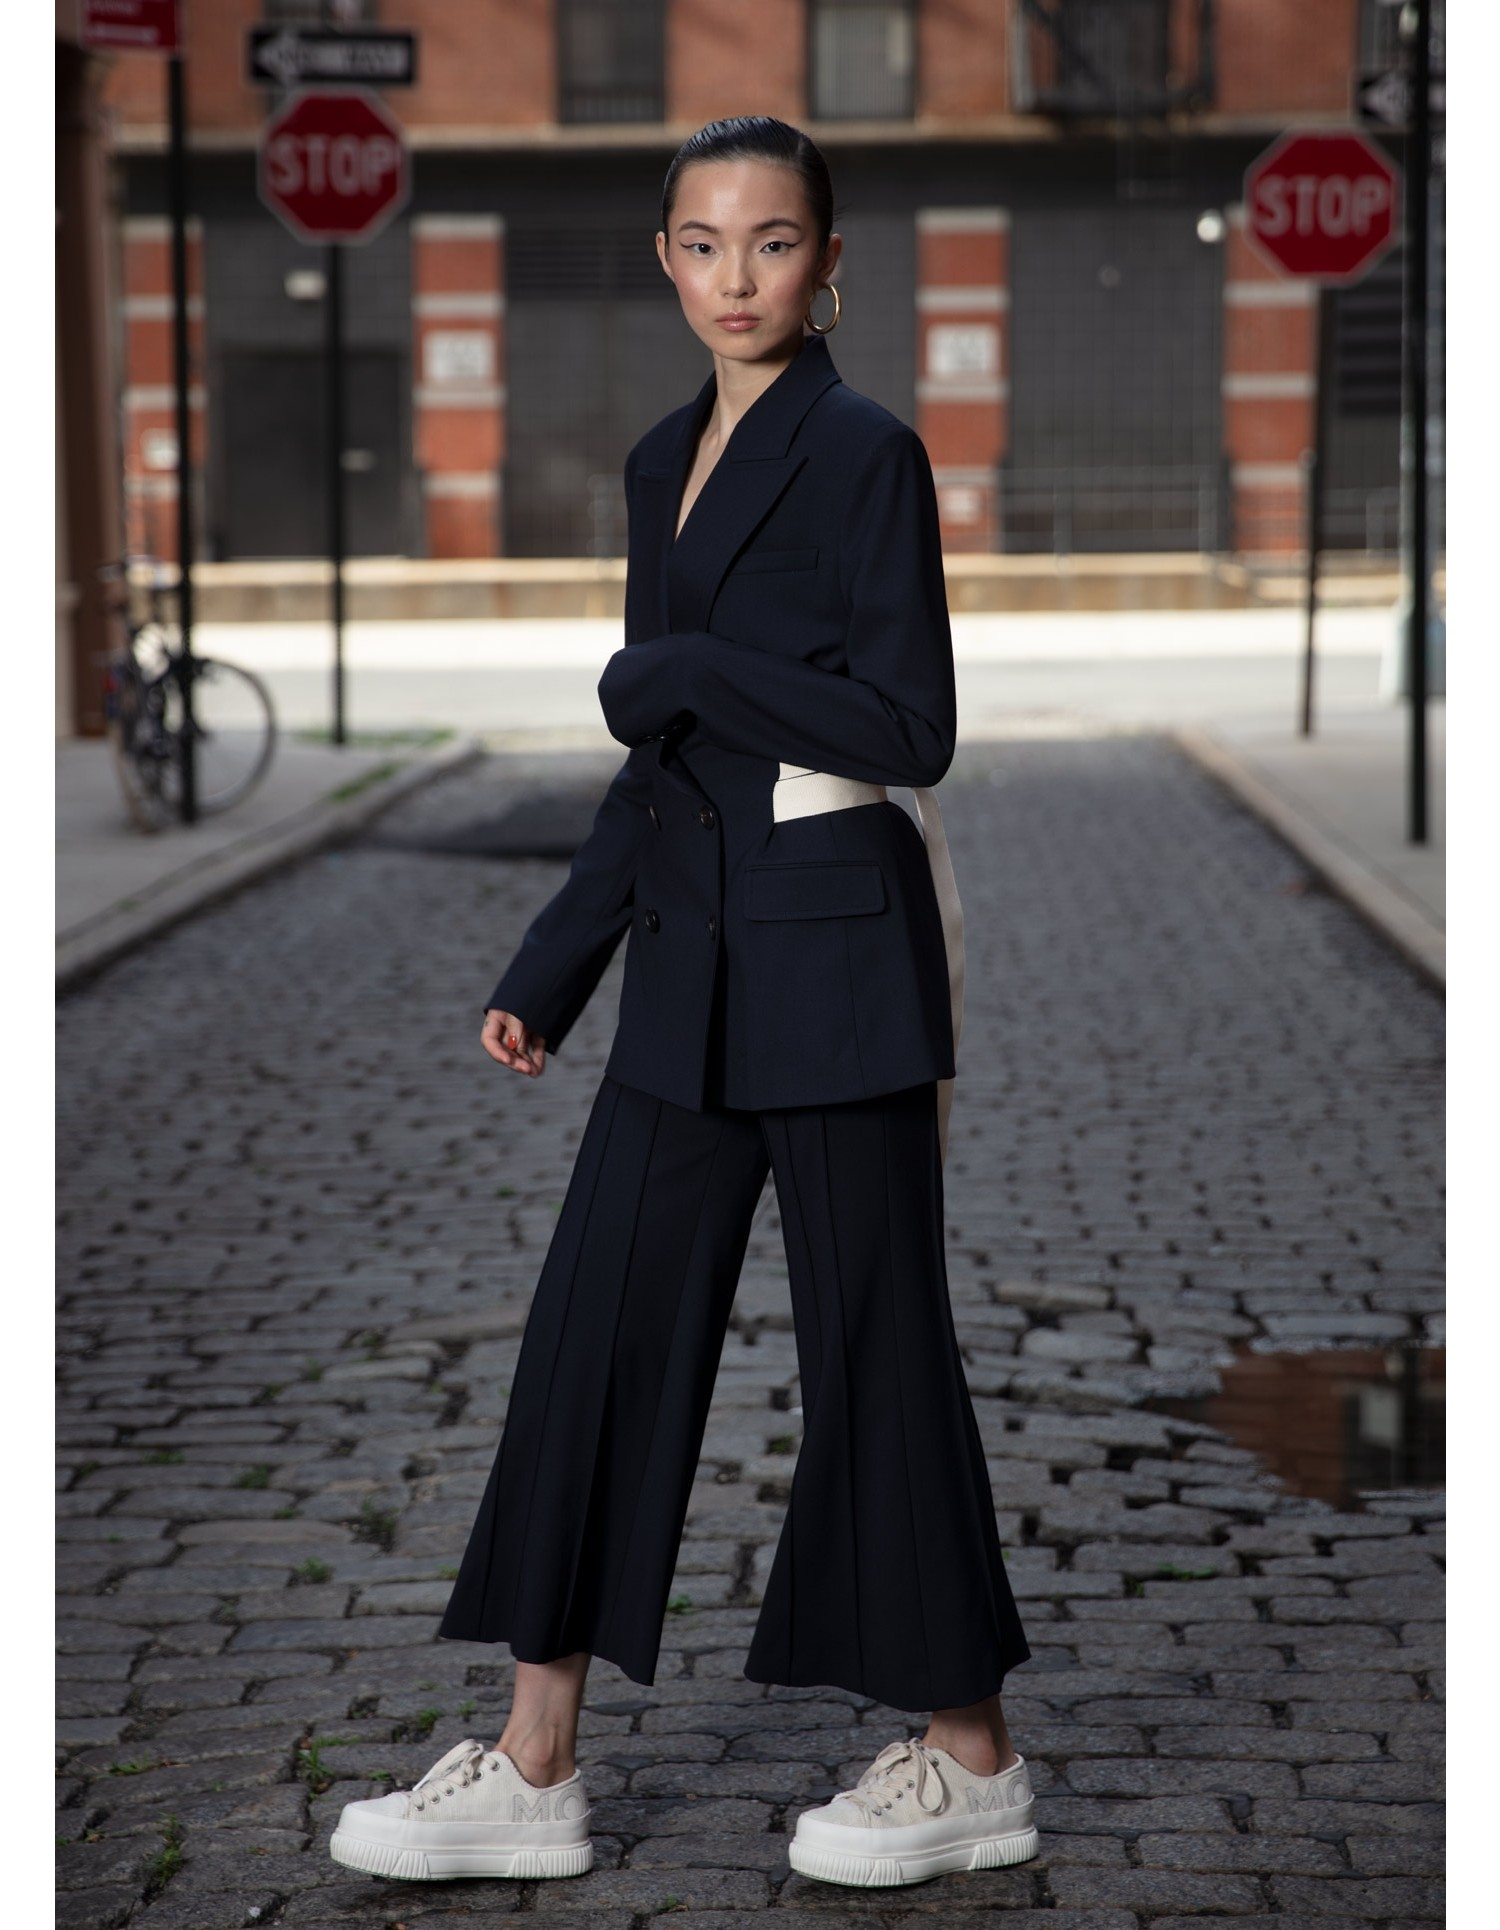 MONSE Cropped Flare Pintuck Pant in Midnight on Model Side View